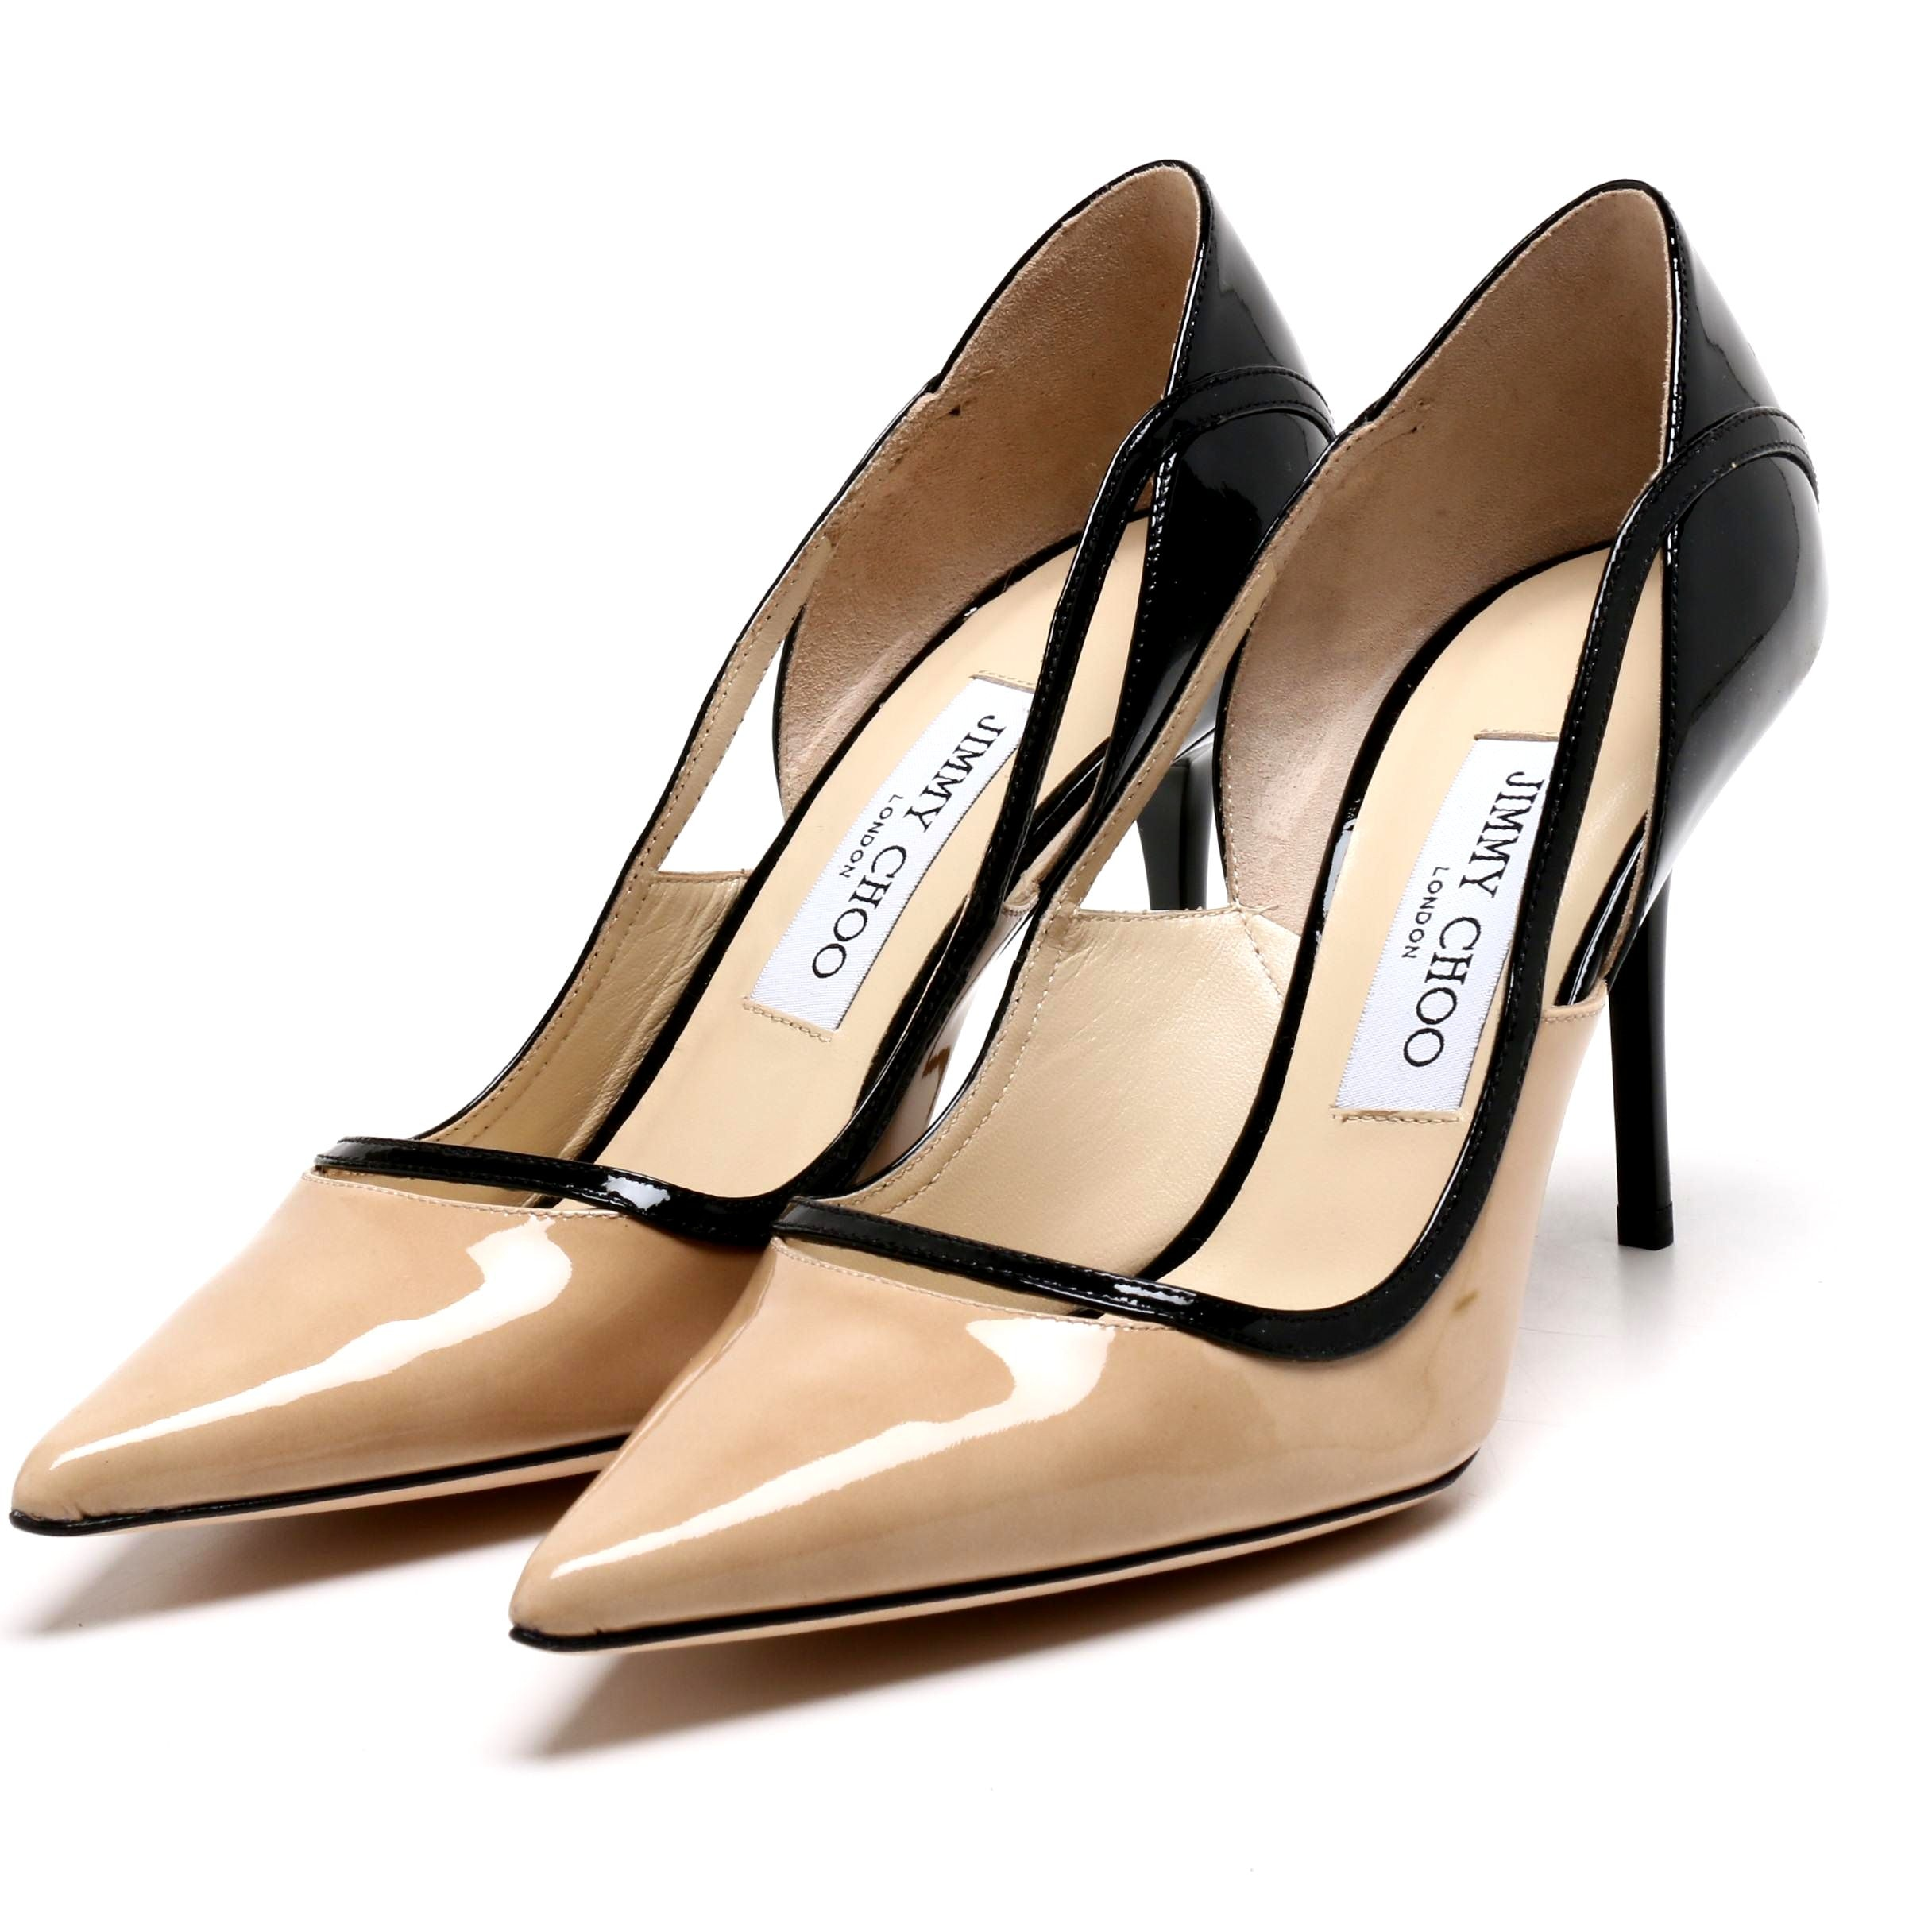 Jimmy Choo London Tan and Black Patent Leather Cutout Pumps